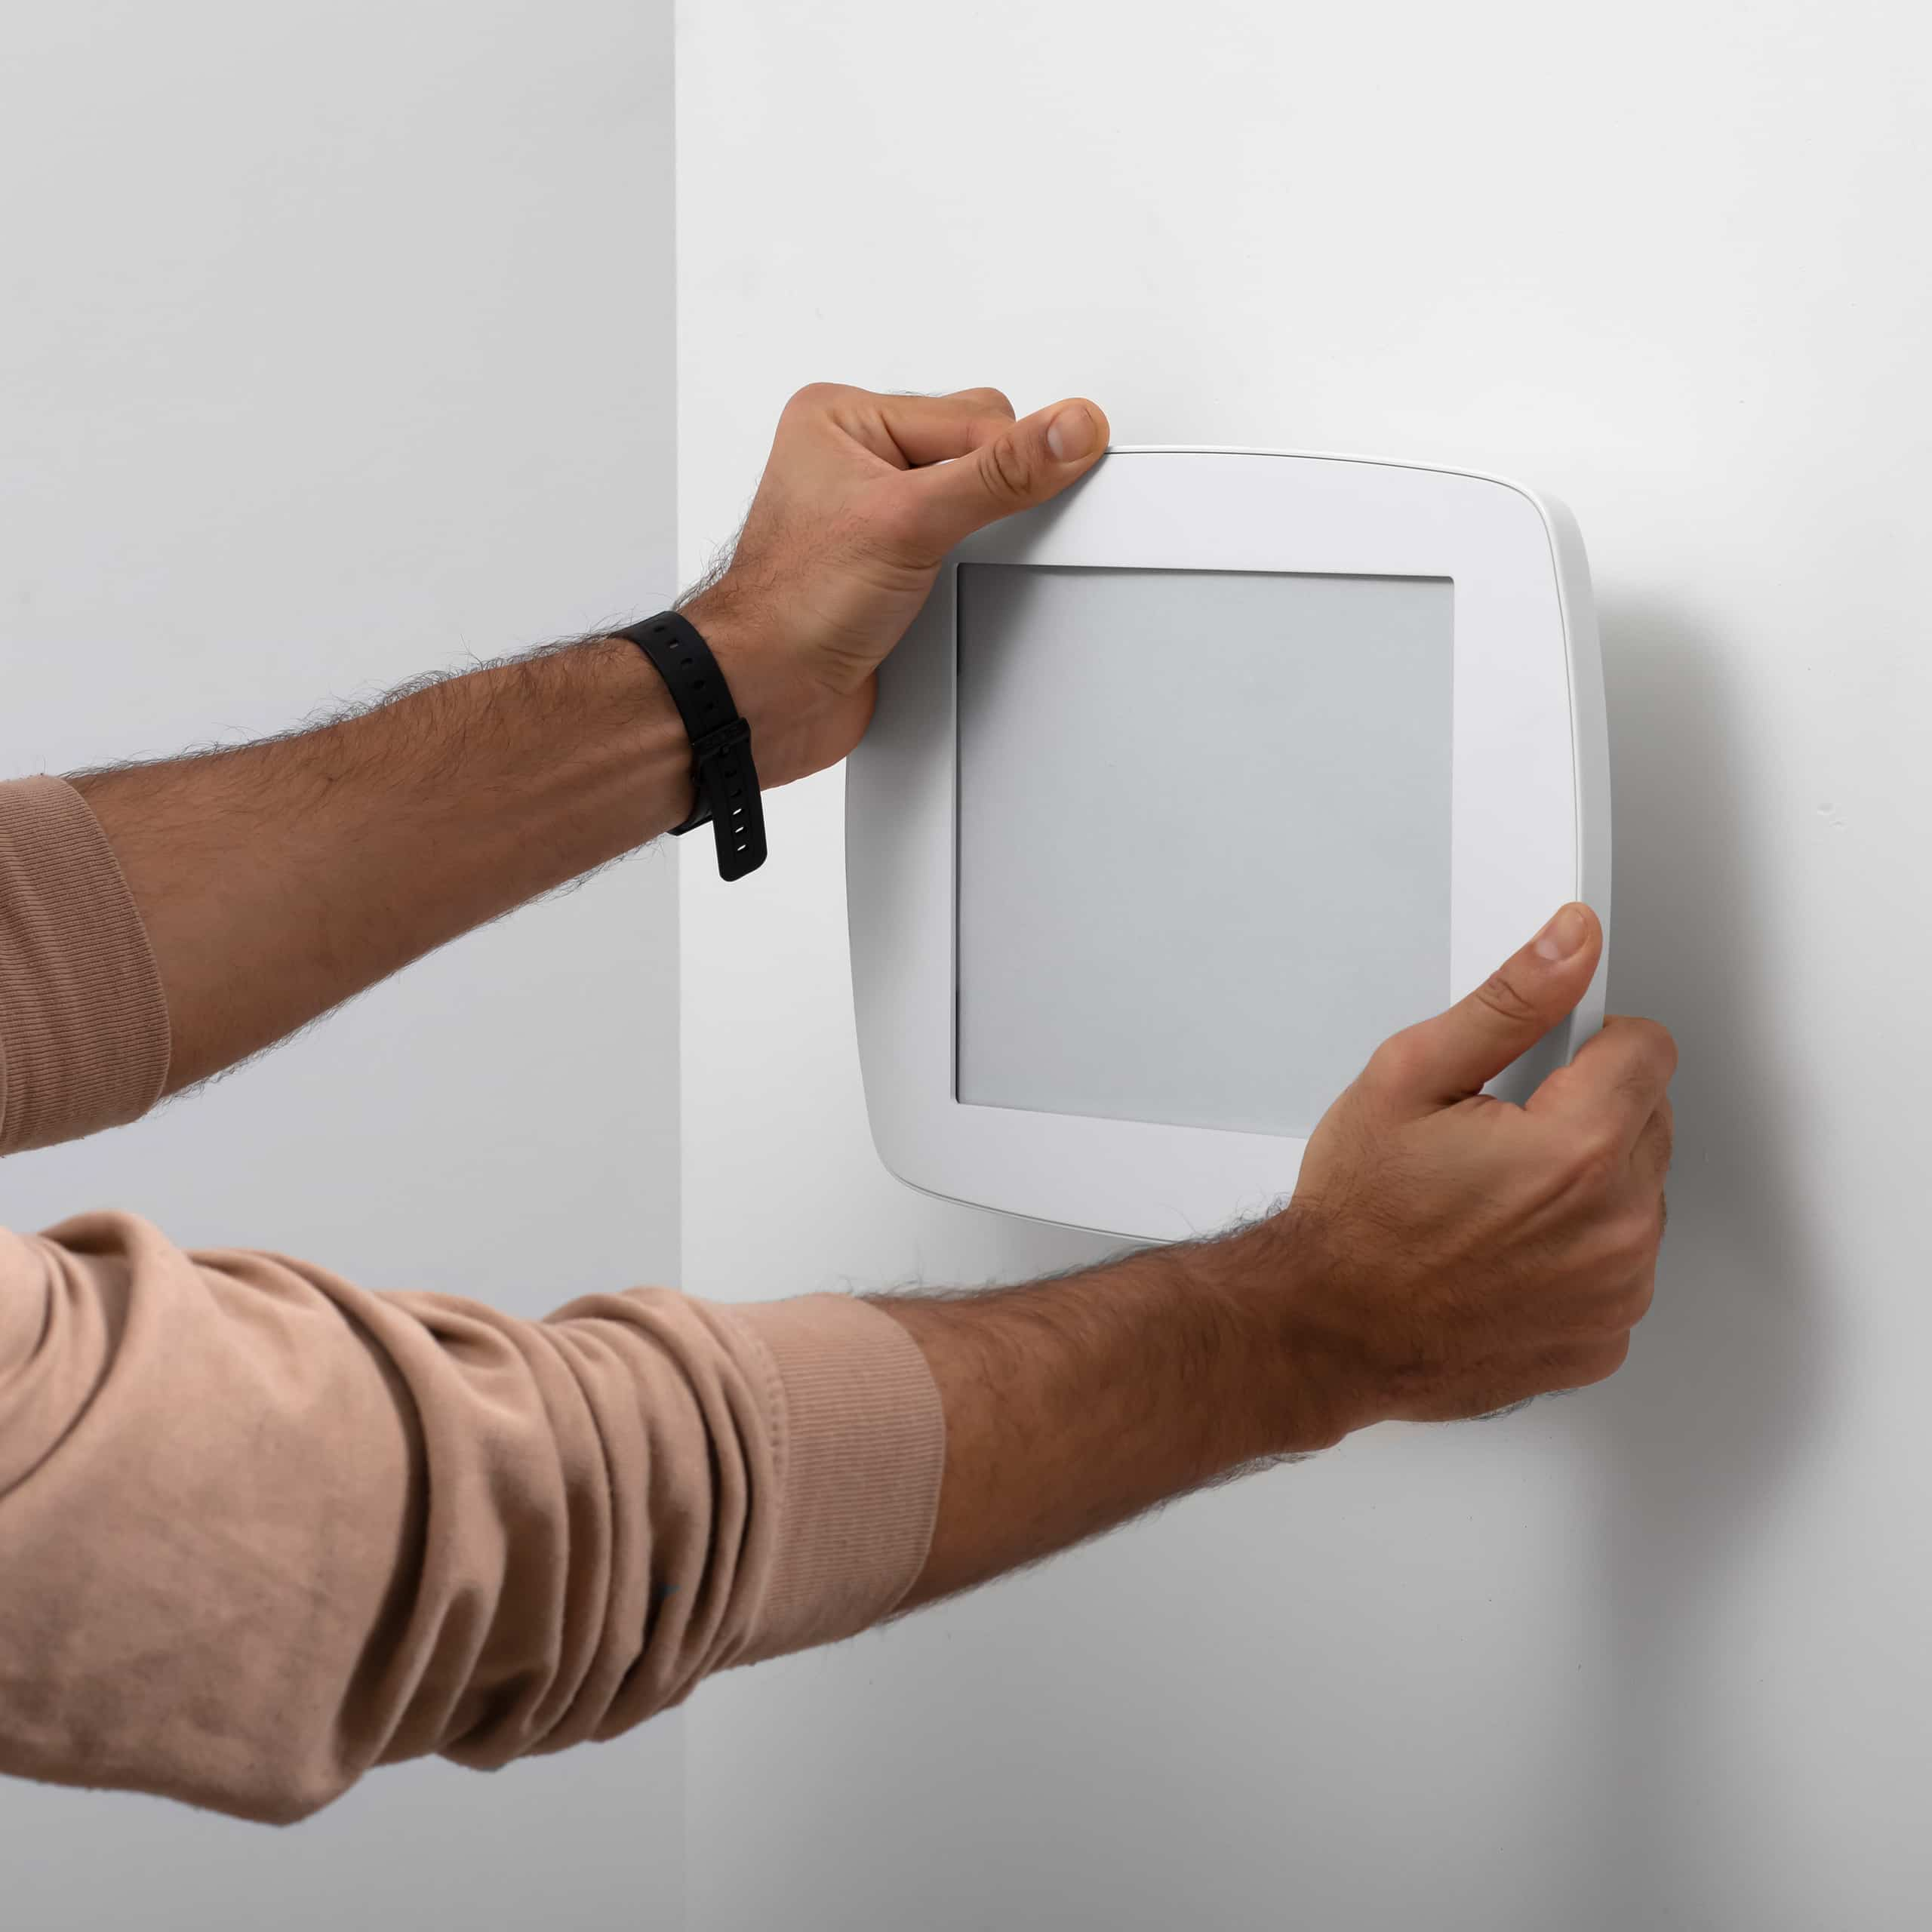 Bouncepad Vesa mounted to the wall, white color, front view